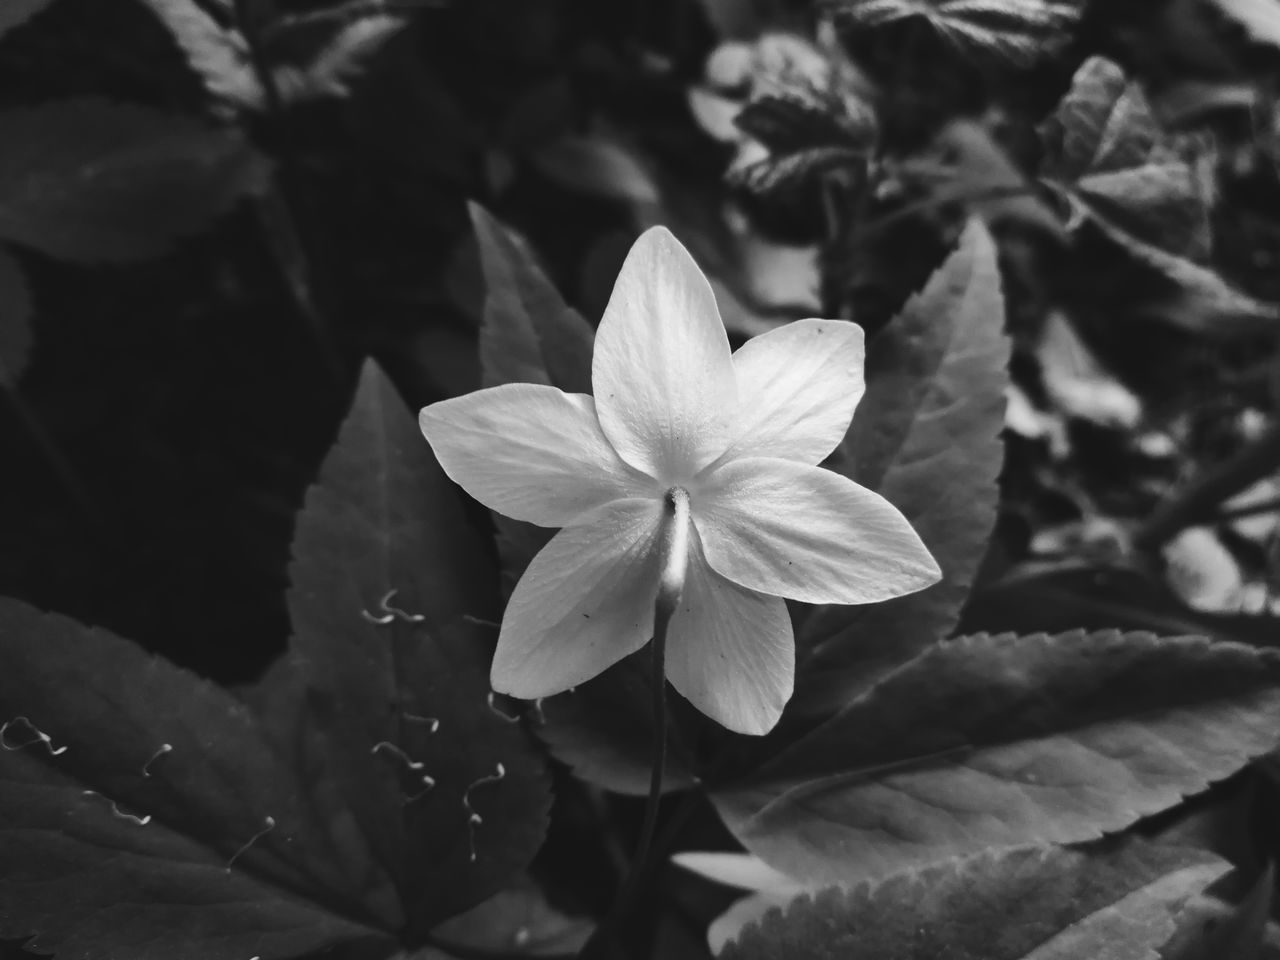 EyeEm Gallery EyeEm Masterclass Flower Head Beauty In Nature Fragility Close-up Blossom Nature Freshness Outdoors Flower The Great Outdoors - 2017 EyeEm Awards Something Different Neighborhood Map Outdoor Photography EyeEm Best Shots Eye4photography  EyEmNewHere Blackandwhite EyeEm Best Shots - Nature Capture The Moment My Unique Style Getting Inspired EyeEm Nature Photography Fresh On Eyeem